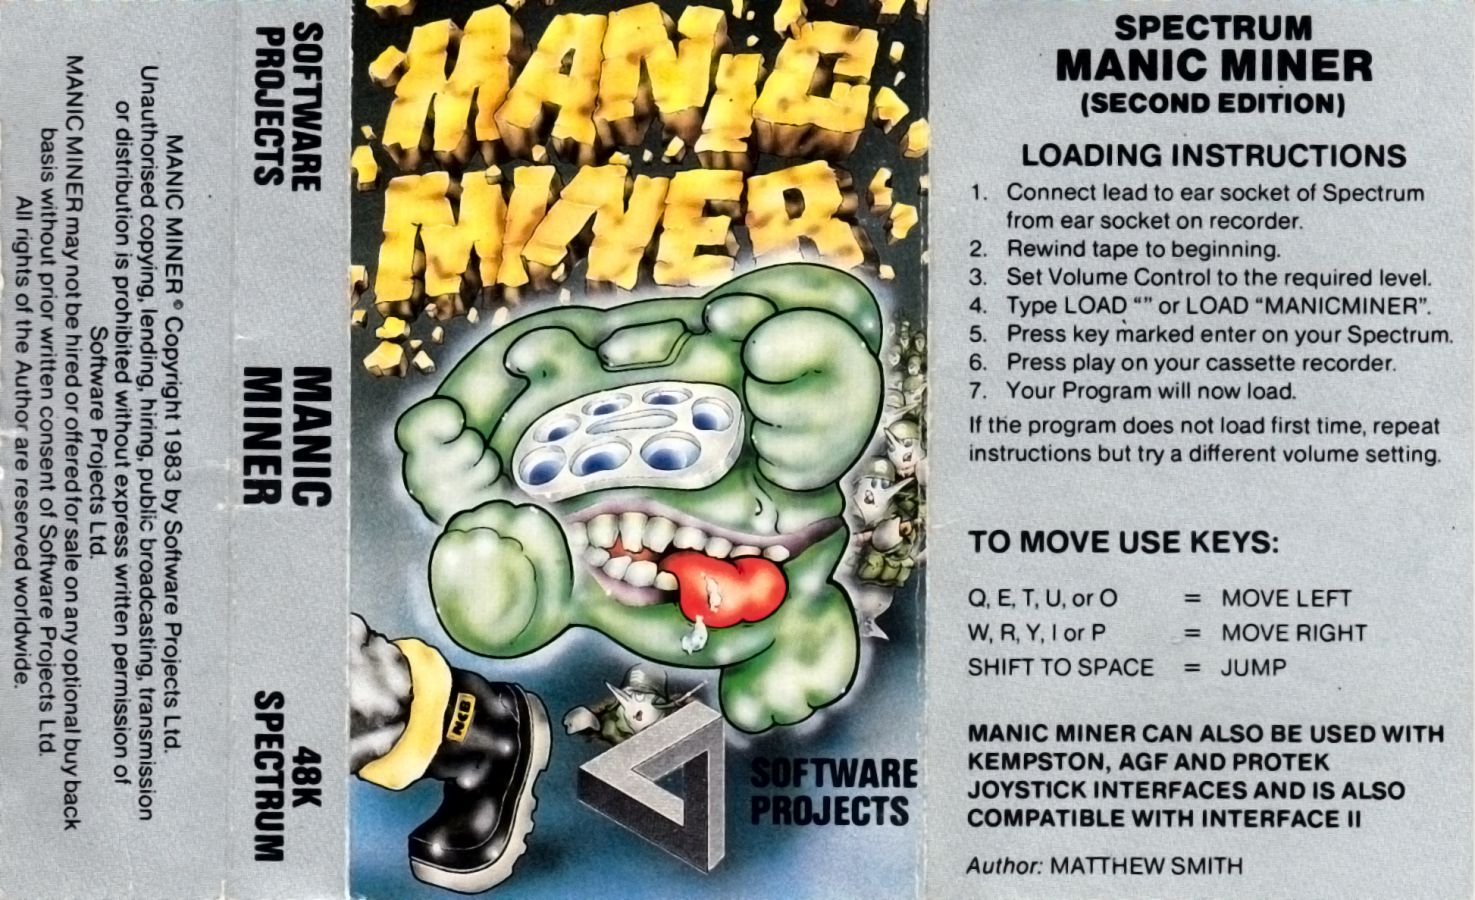 manicminer_softwareprojects.jpg